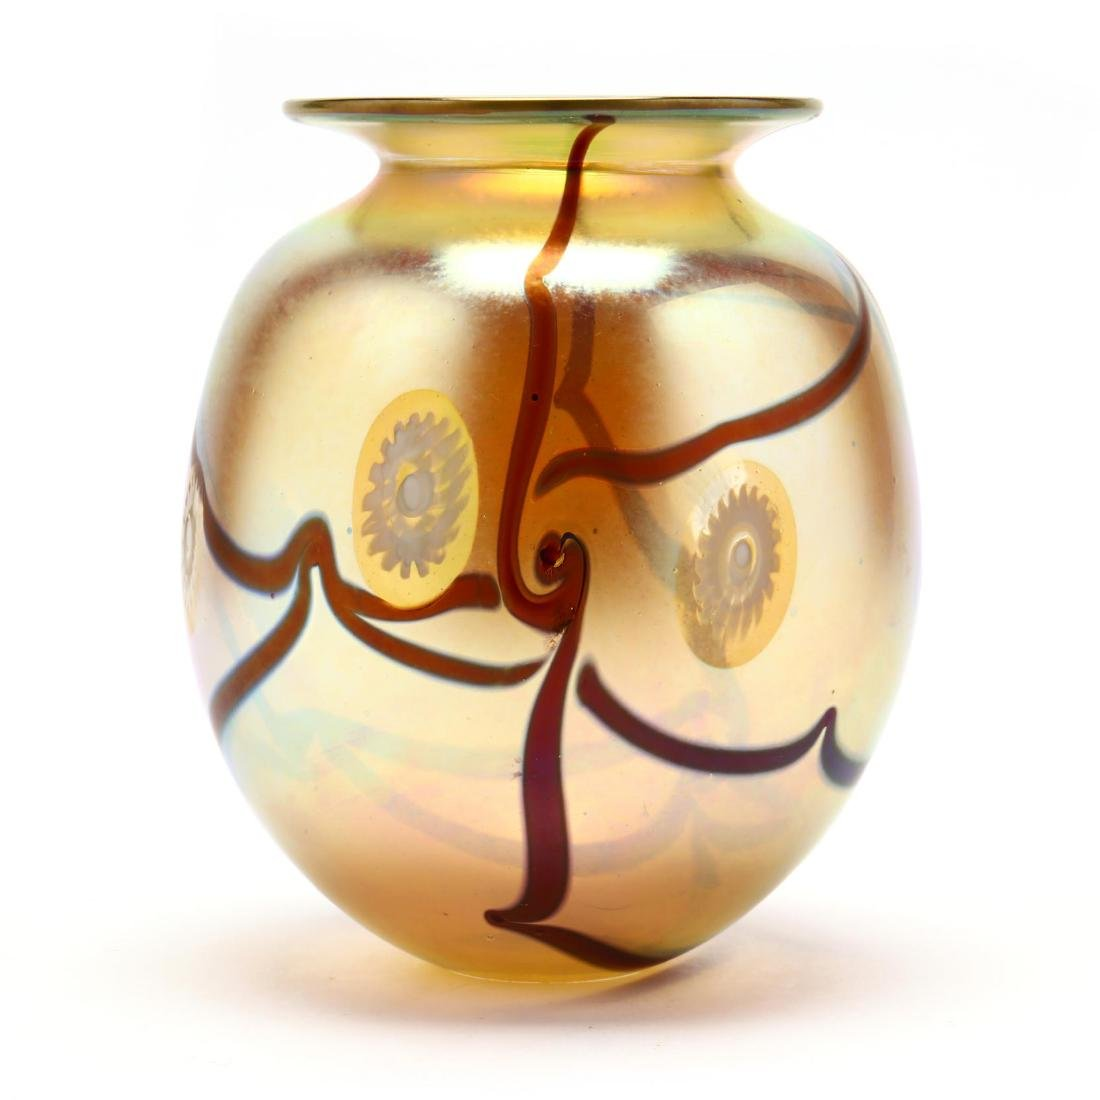 Eickholt Art Glass Vase